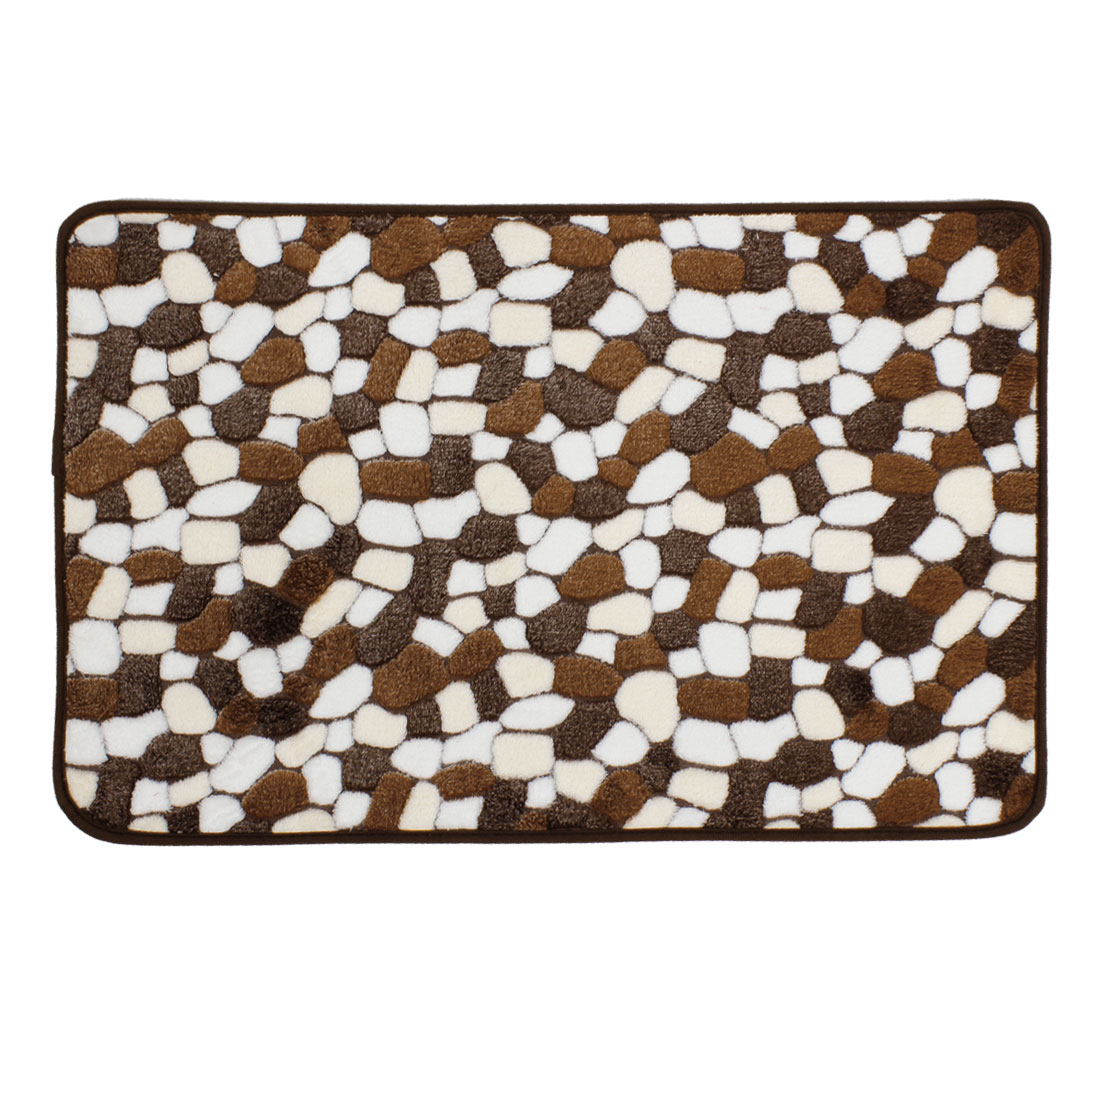 White Brown Cobblestone Patetrn Plush Mat Area Rug Carpet 70cm x 45cm